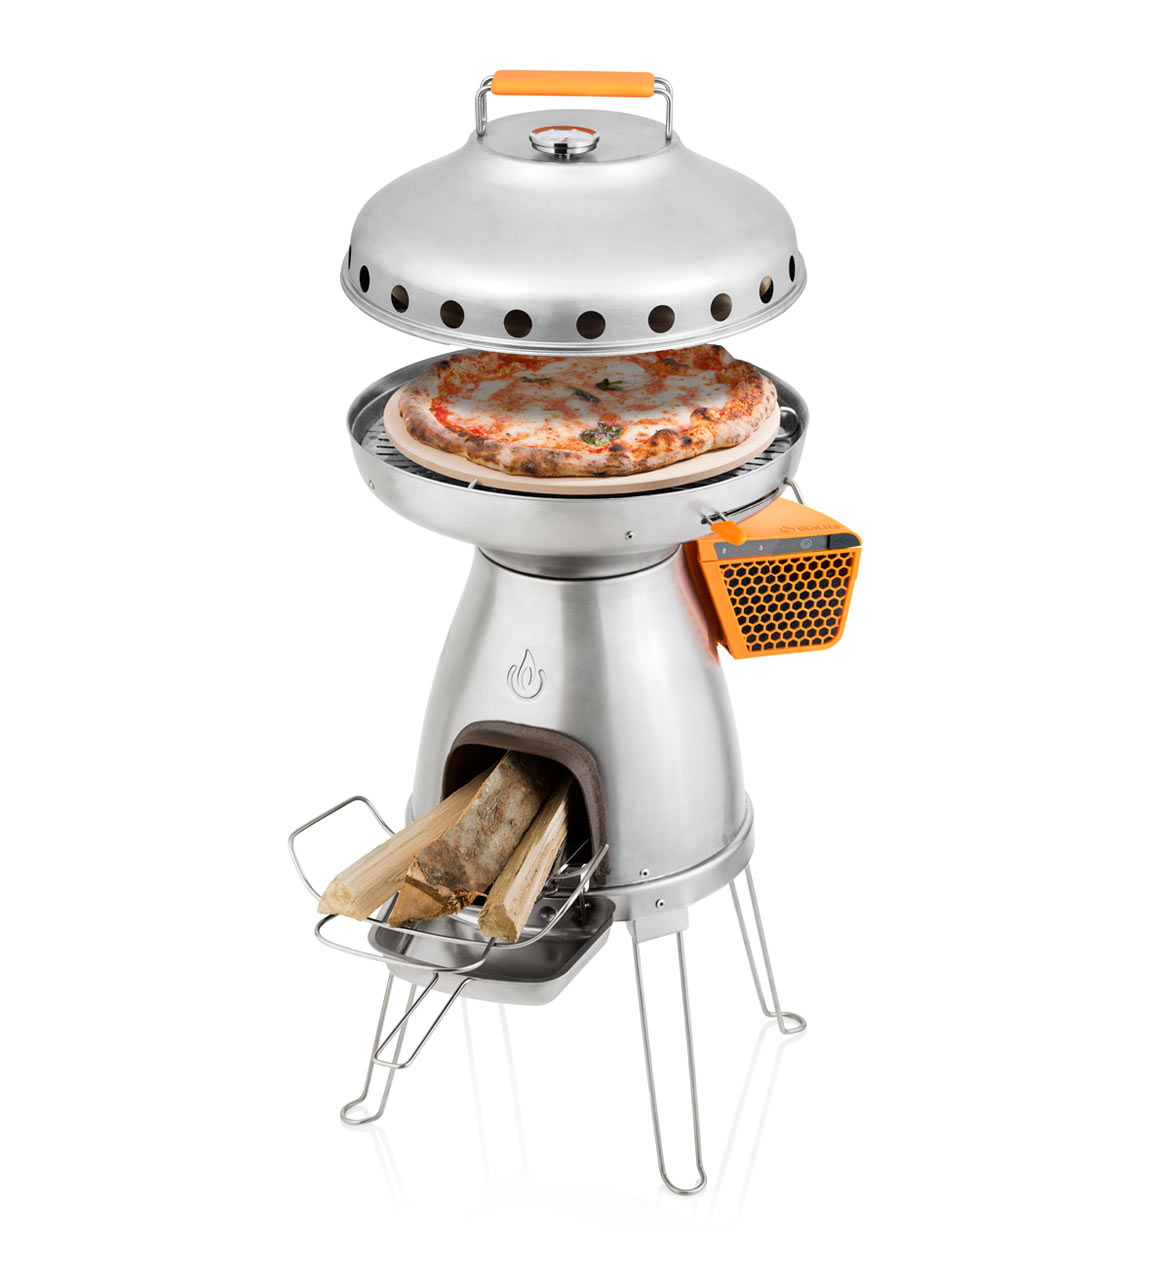 Wood Burning Stove For Pizza And Grill For Camping